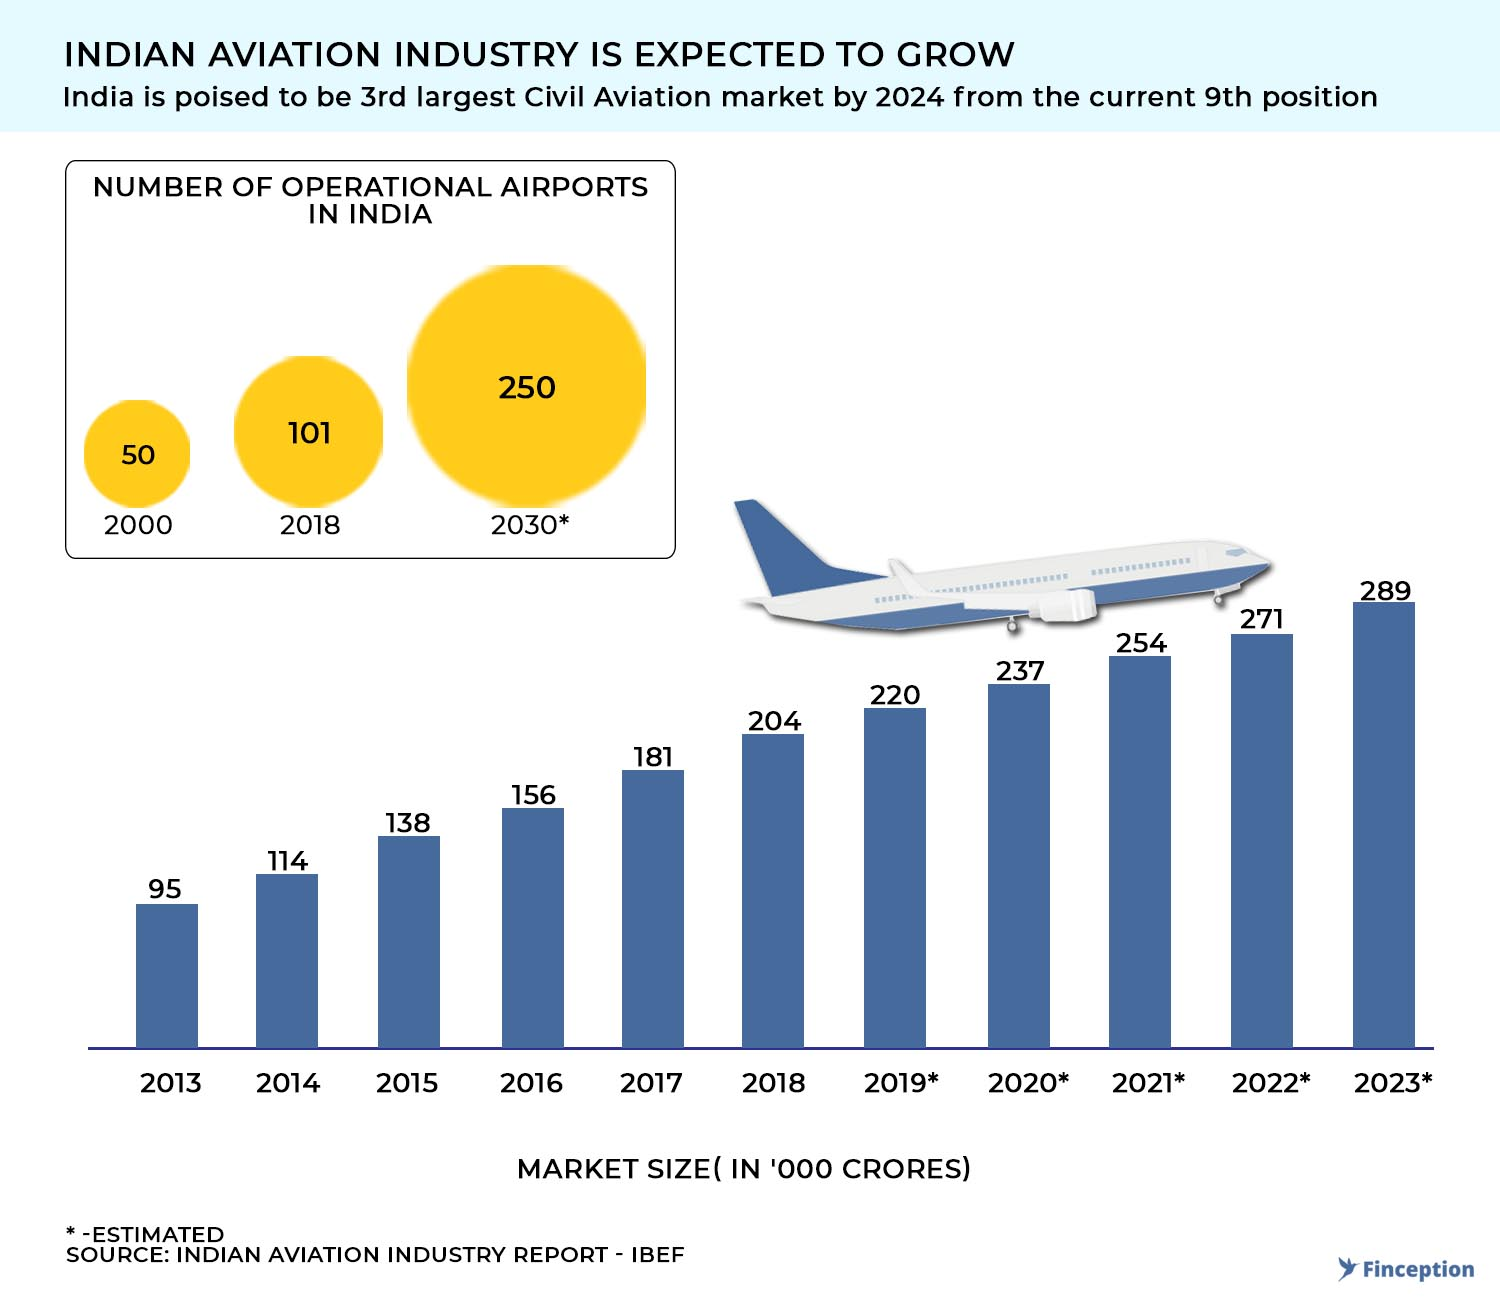 Indian Airlines is poised to grow in next decade